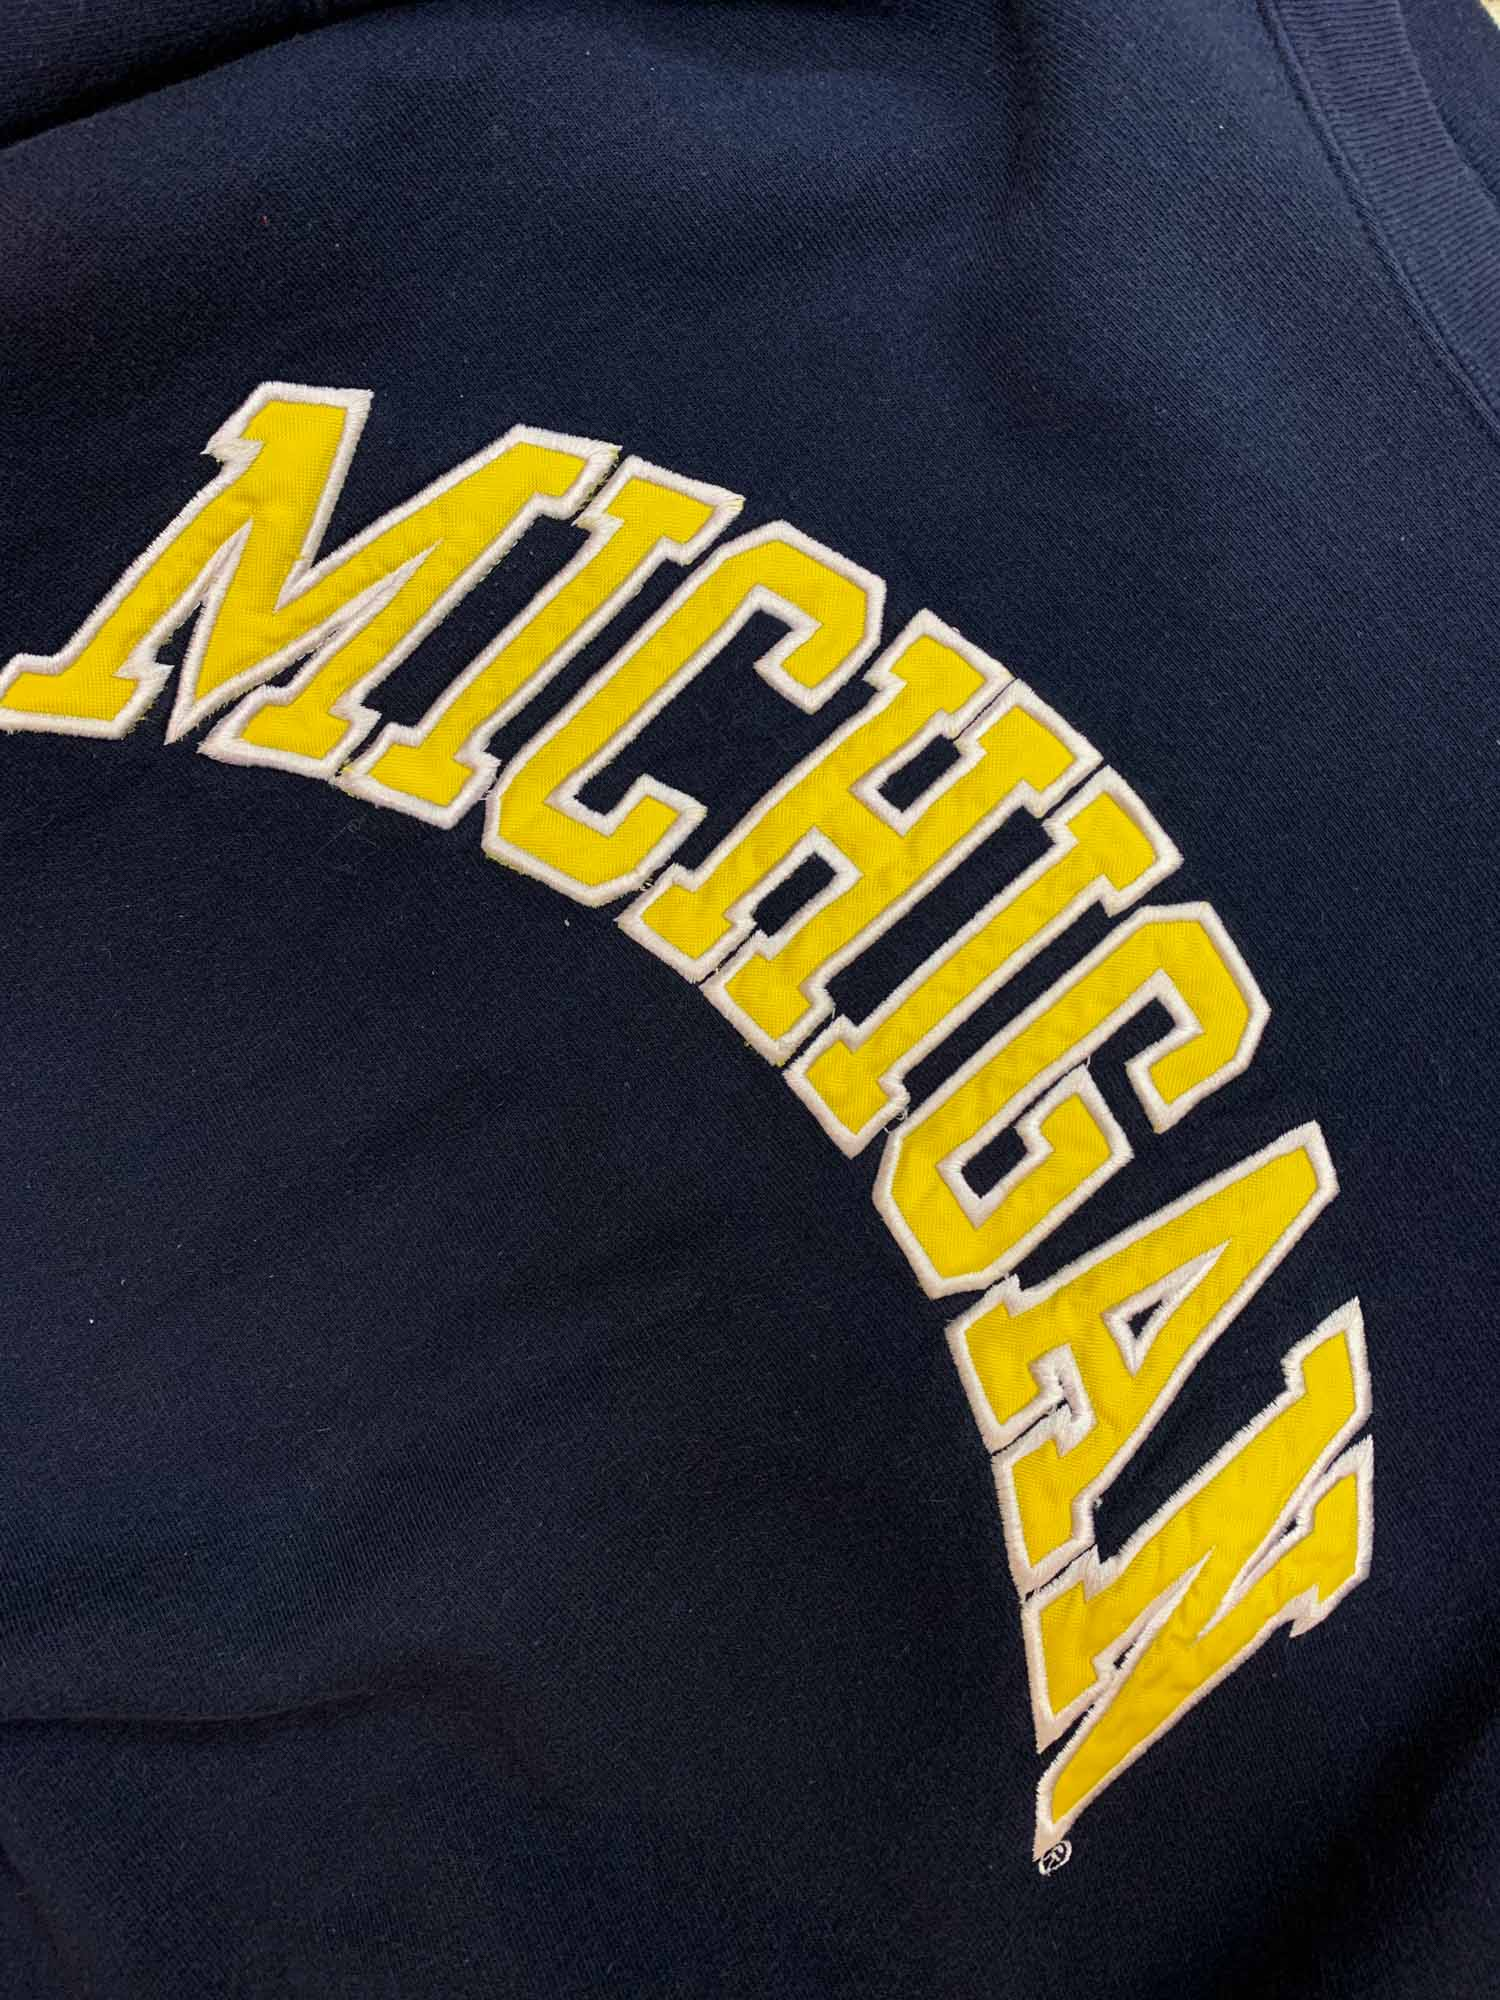 VINTAGE MICHIGAN CREWNECK